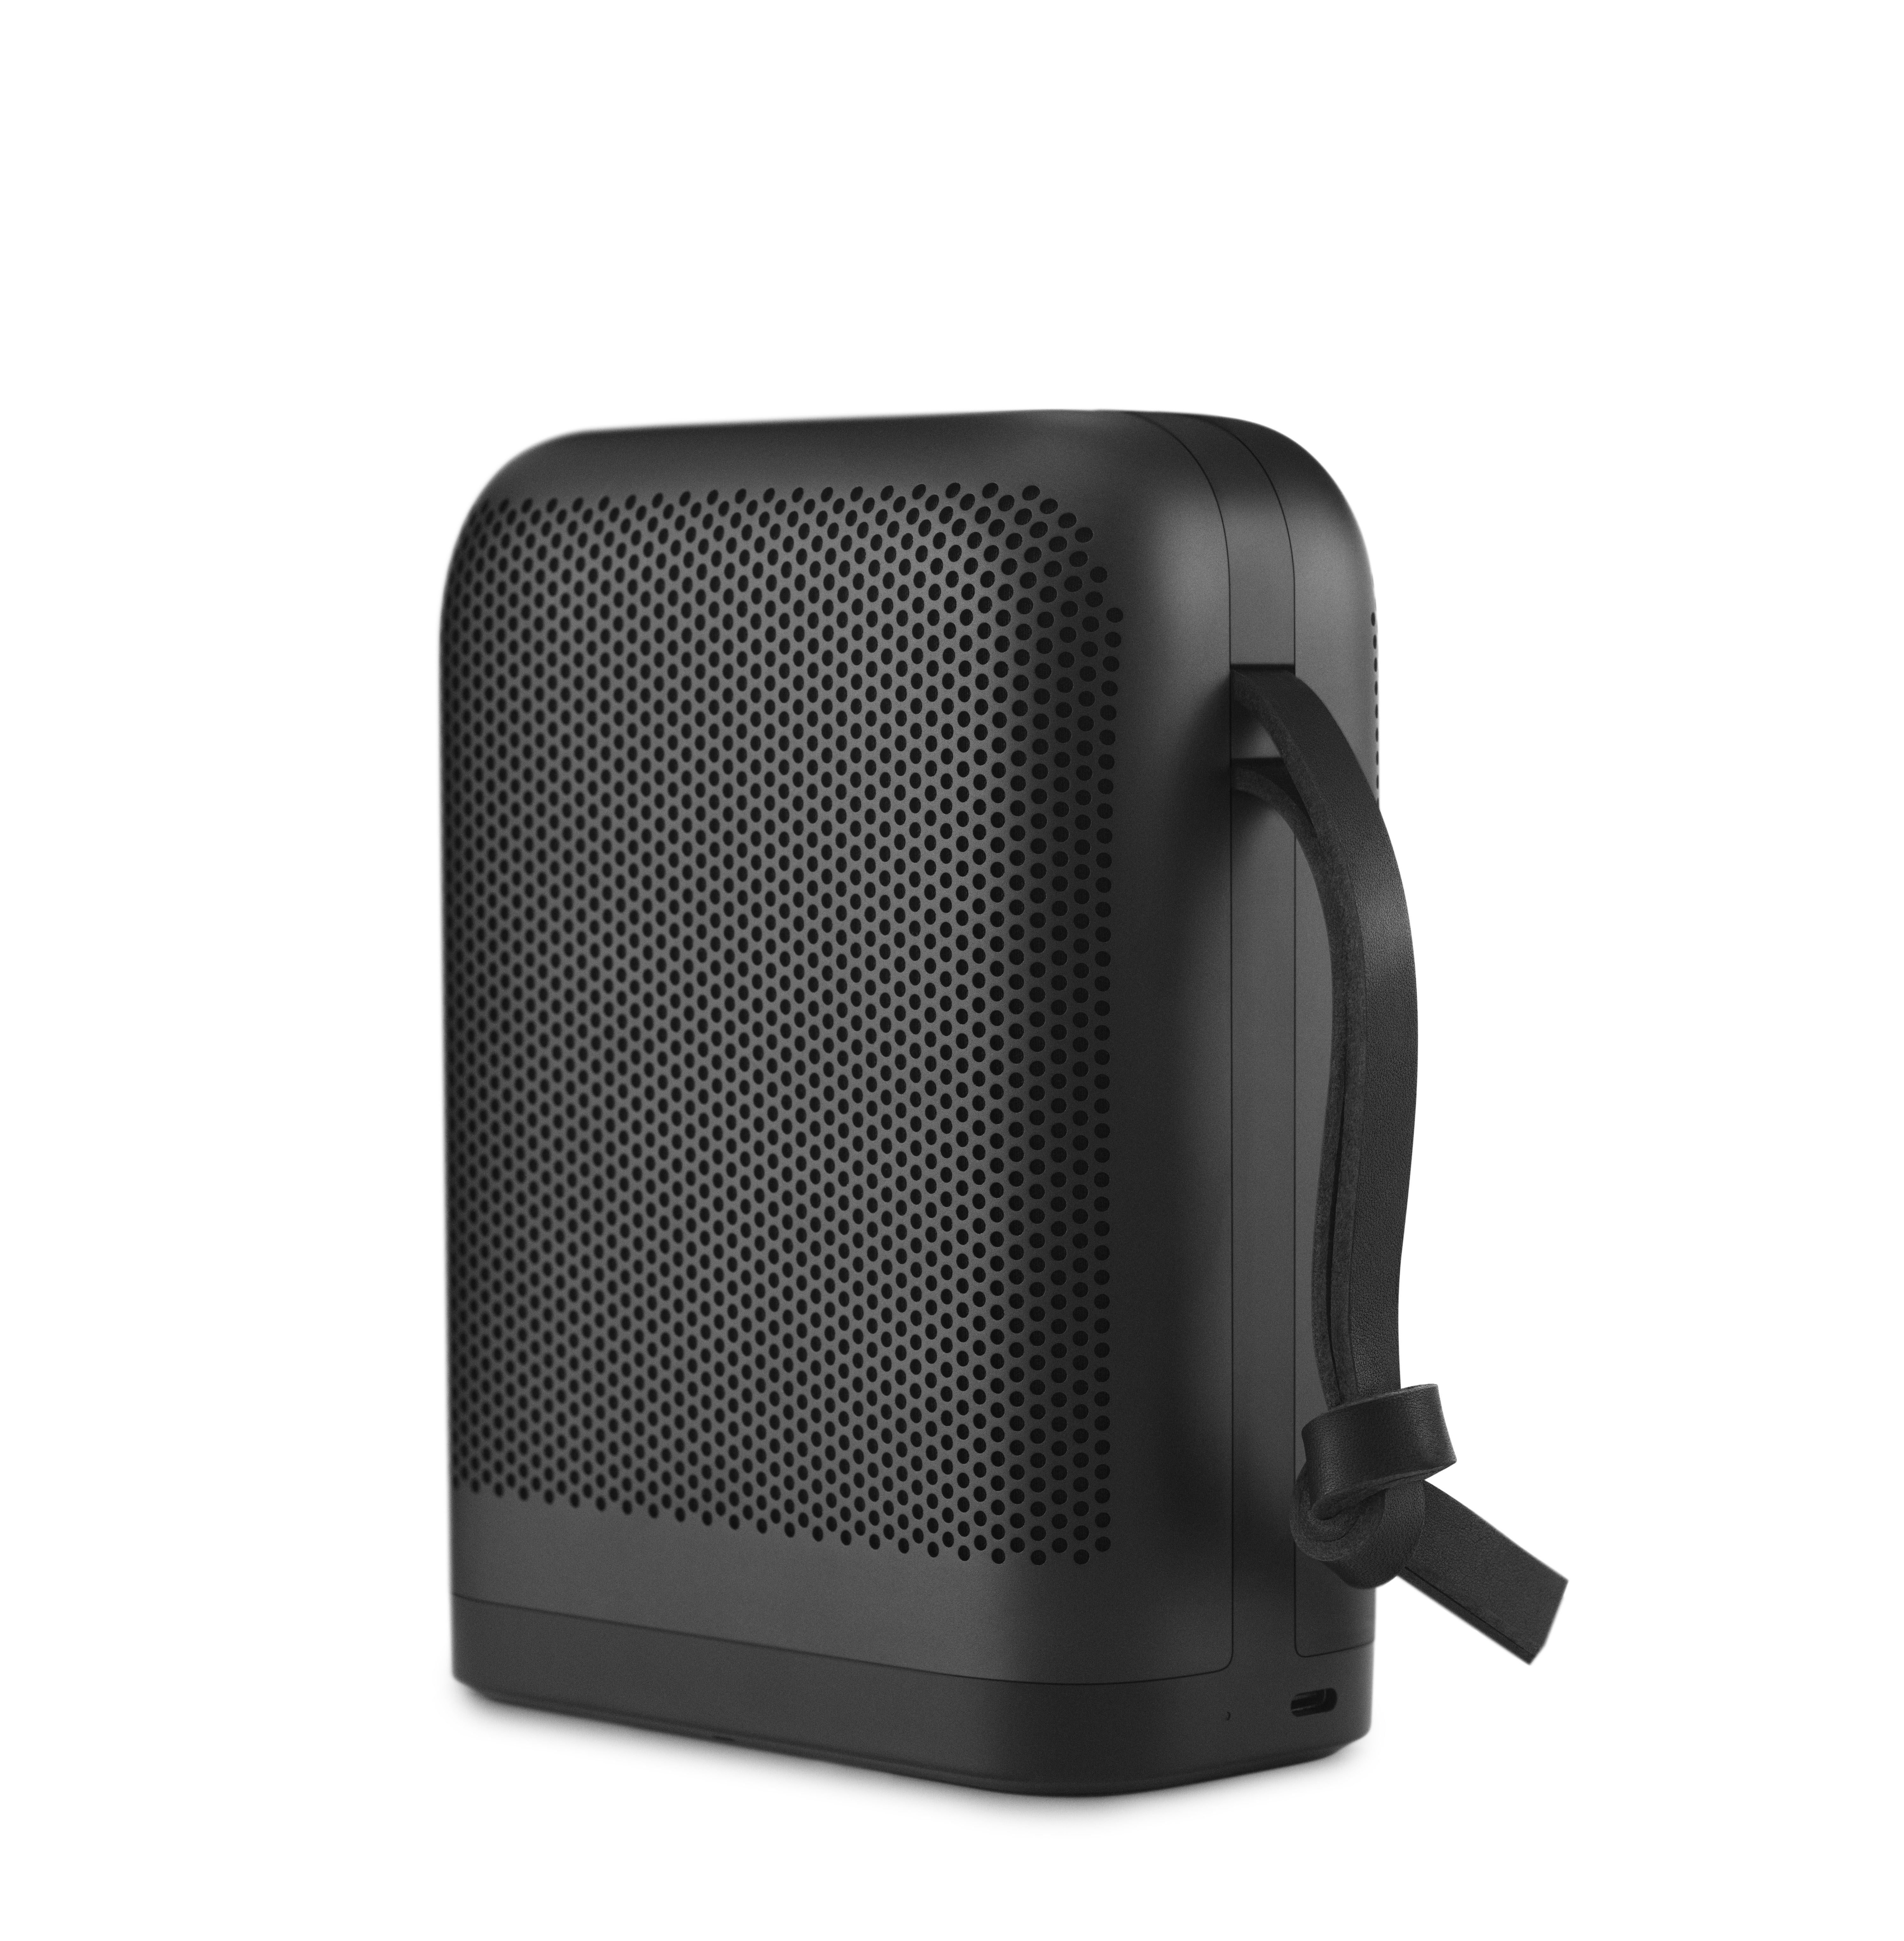 Accessories - Speakers & Audio - P6 Bluetooth speaker - / Portable by B&O PLAY by Bang & Olufsen - Black / Black leather - Aluminium, Genuine leather